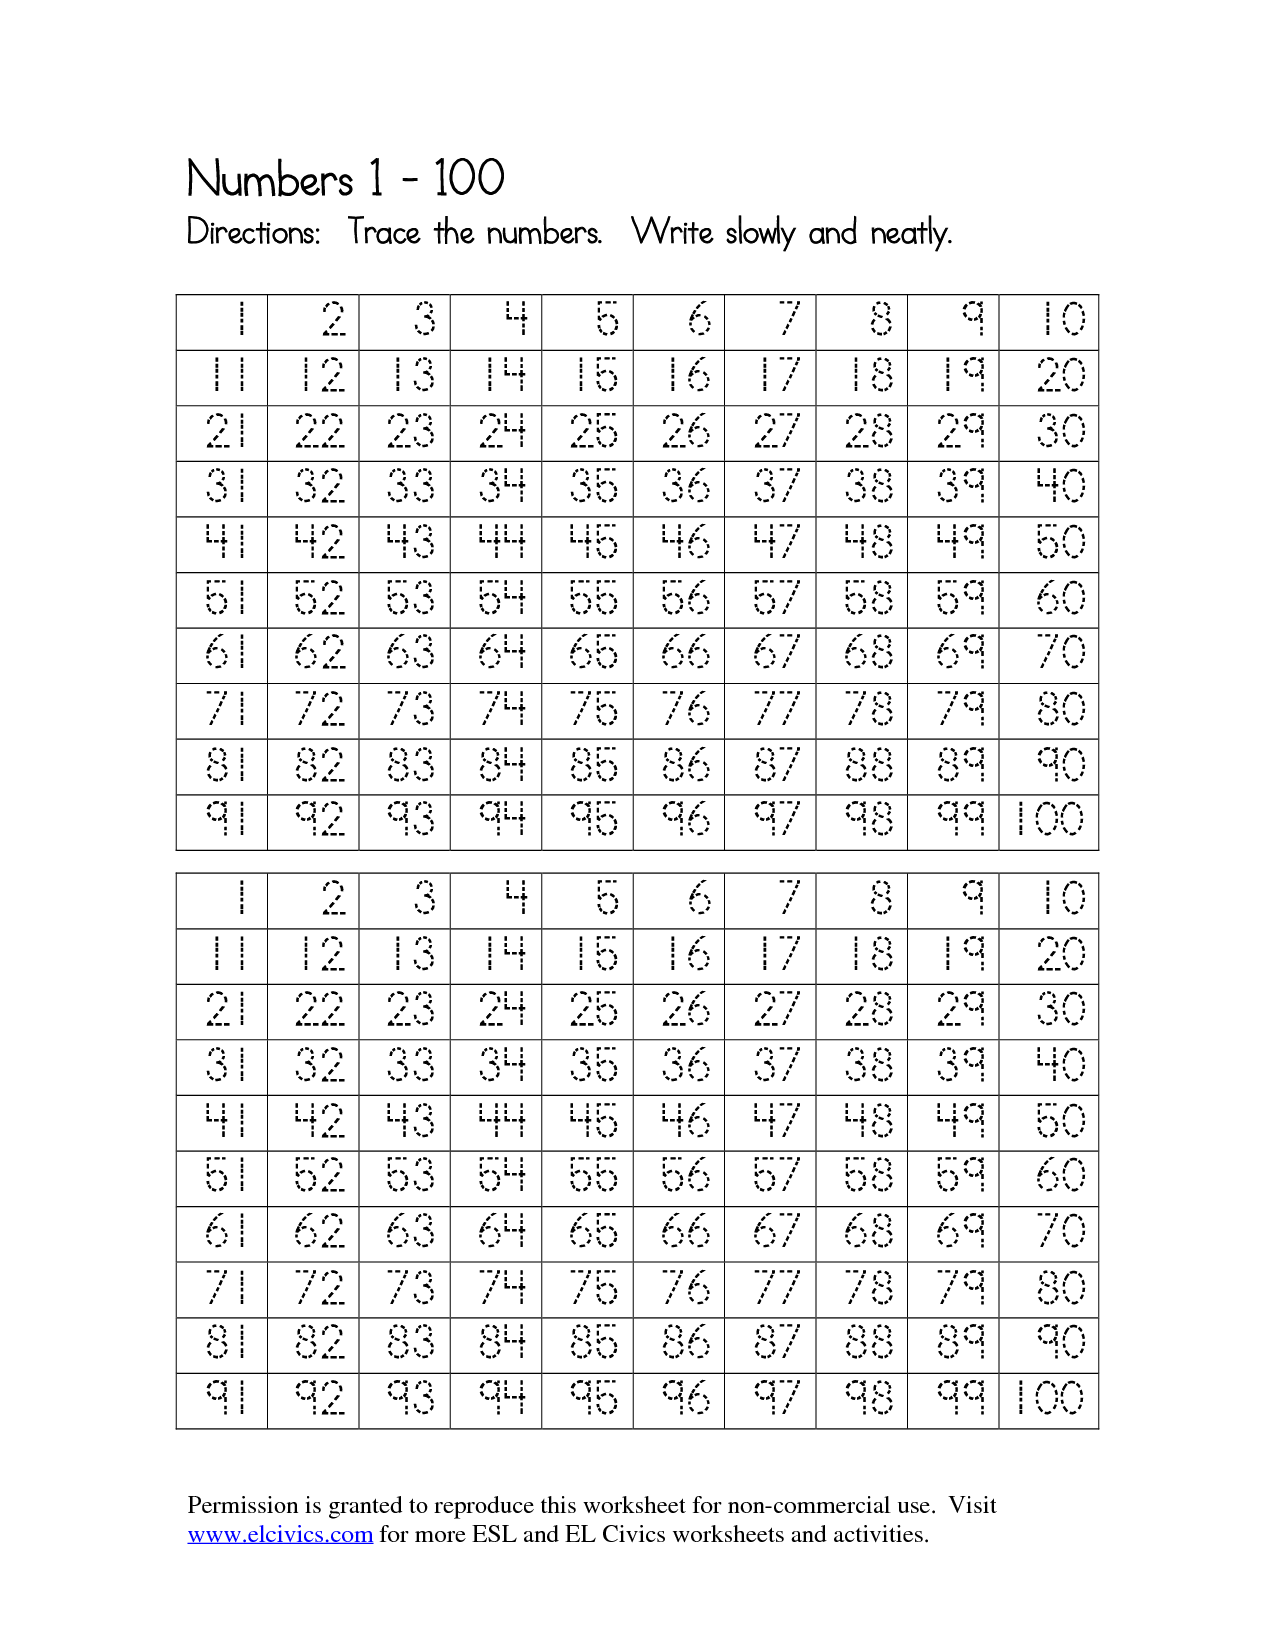 5 Best Images of Number Tracing Worksheets 1-100 Printables ...